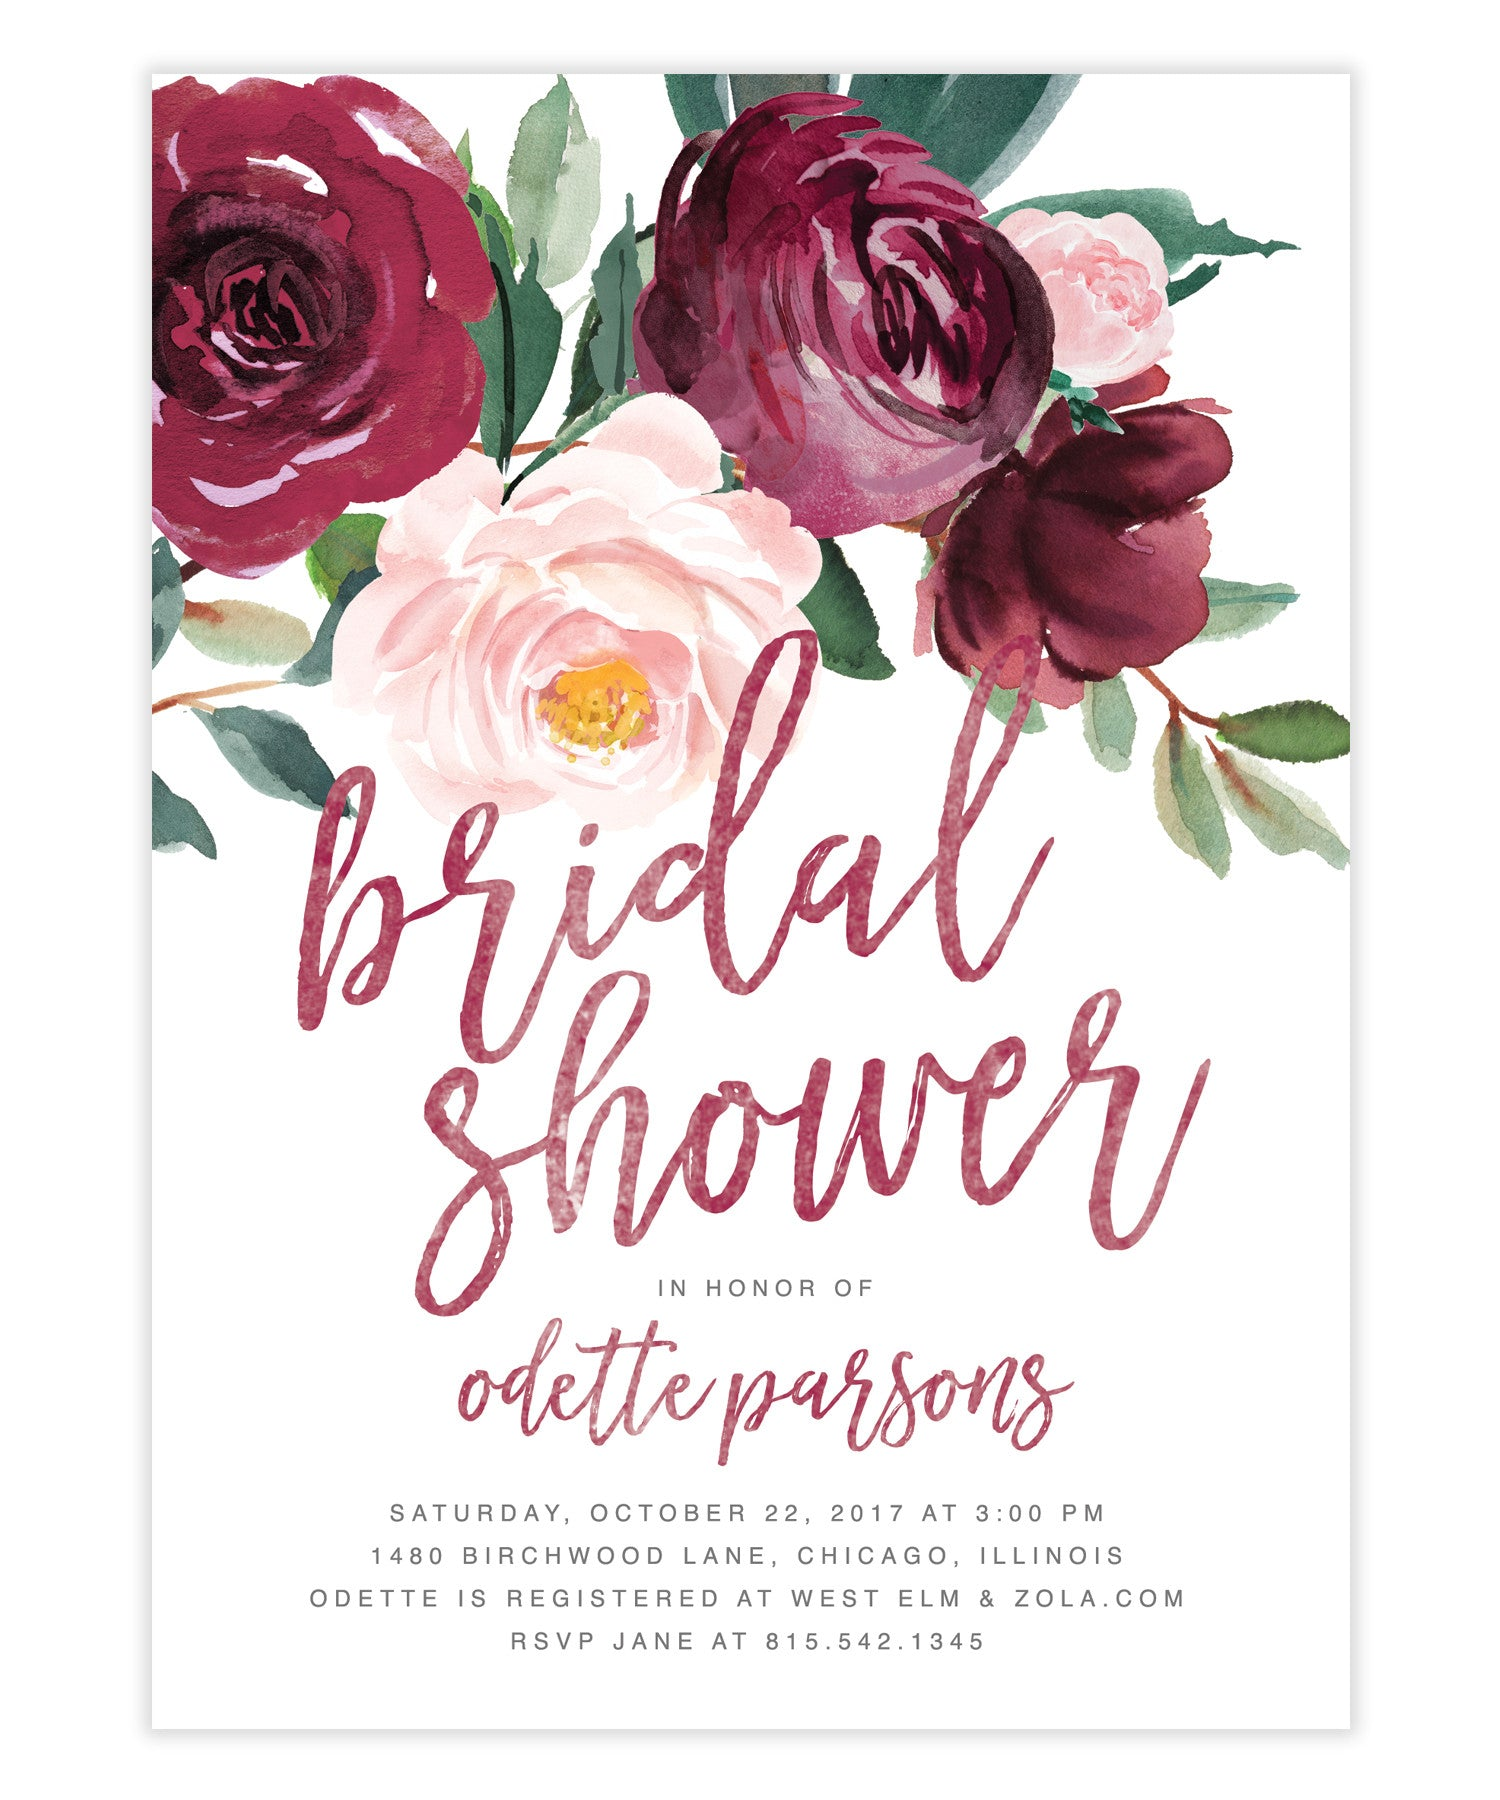 invitation bridal liner shower boho floral fullxfull envelope watercolor invites invite il garden chic listing